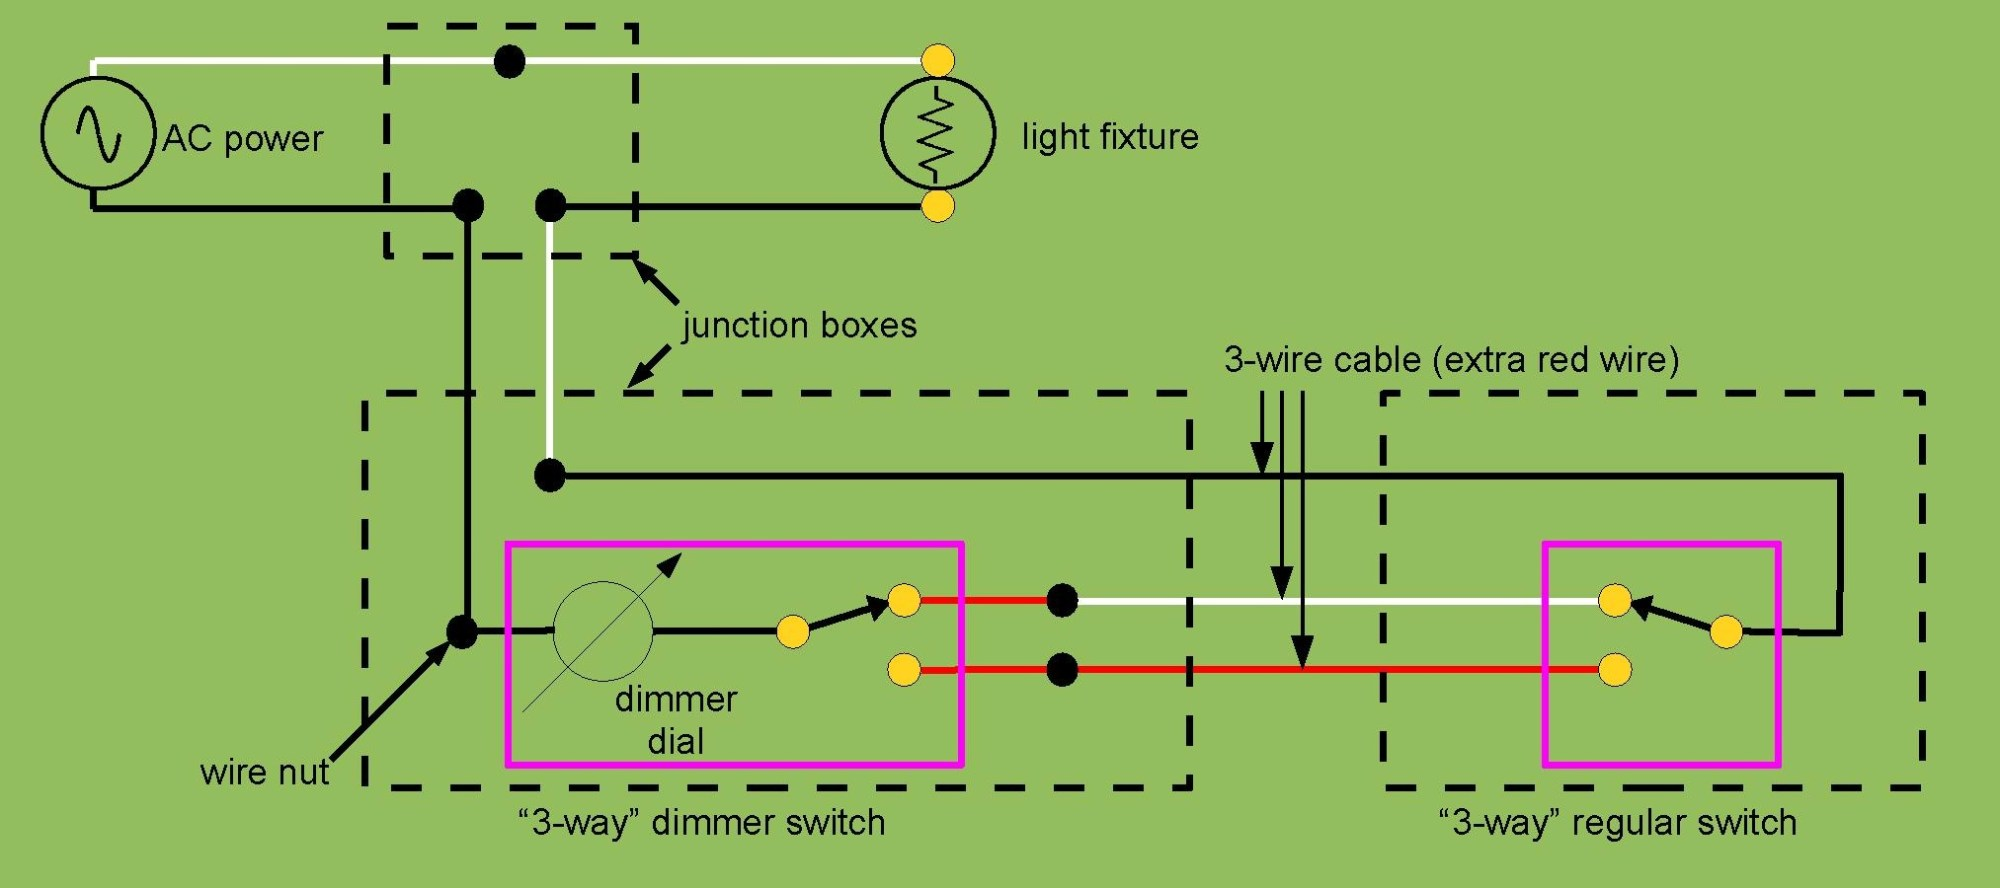 hight resolution of how to wire a 3 way switch pdf wiring diagram user bx cable wiring 3 way switch diagram